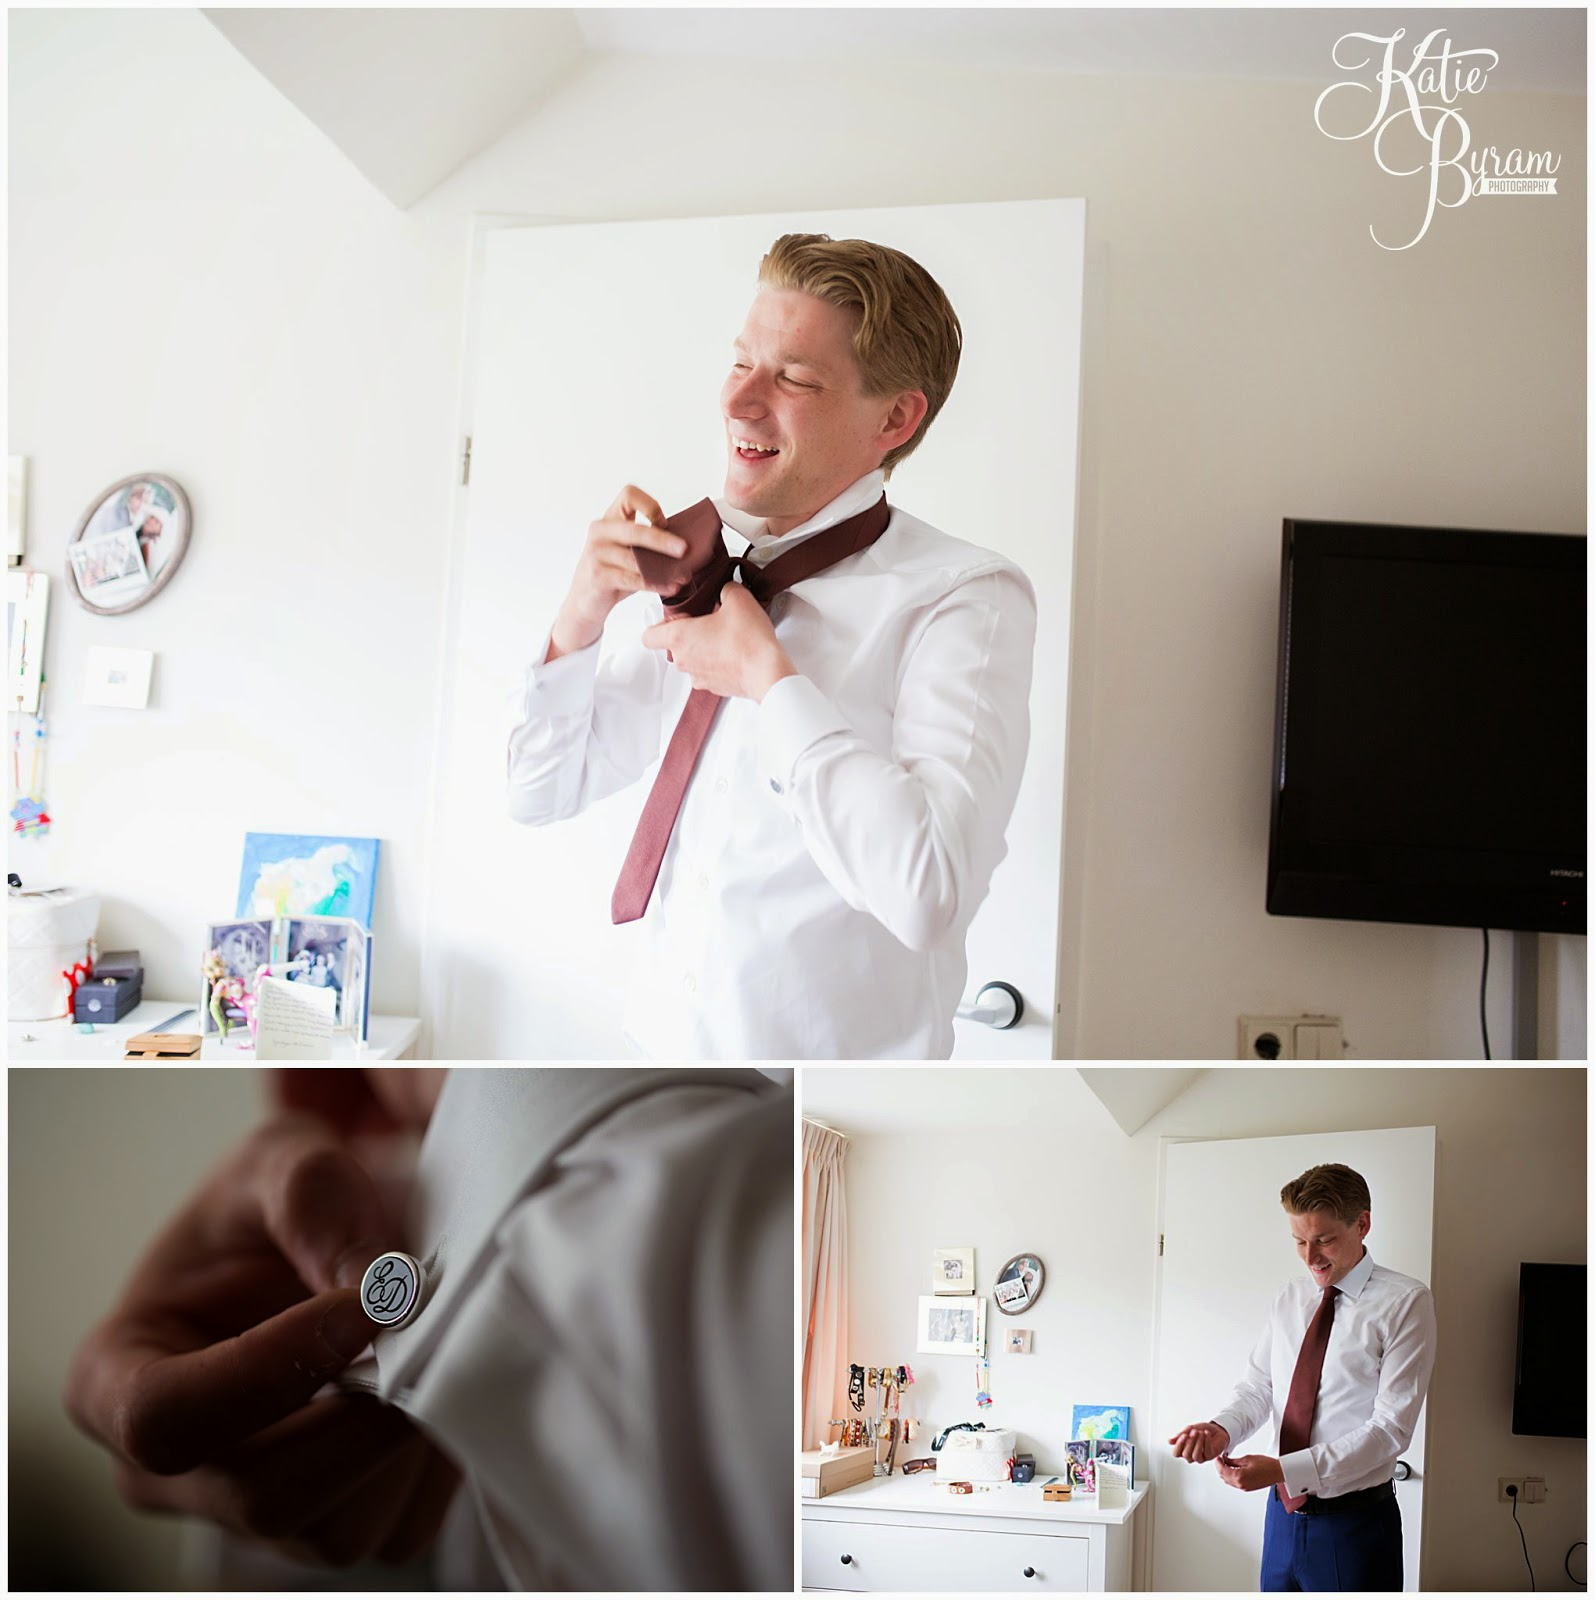 groom getting ready, katie byram photography, dutch wedding photographer, winschoten wedding, katie byram photography, dutch wedding photographer, winschoten wedding, netherlands wedding, destination wedding photographer, netherlands wedding, destination wedding photographer, holland wedding, papa di grazzi